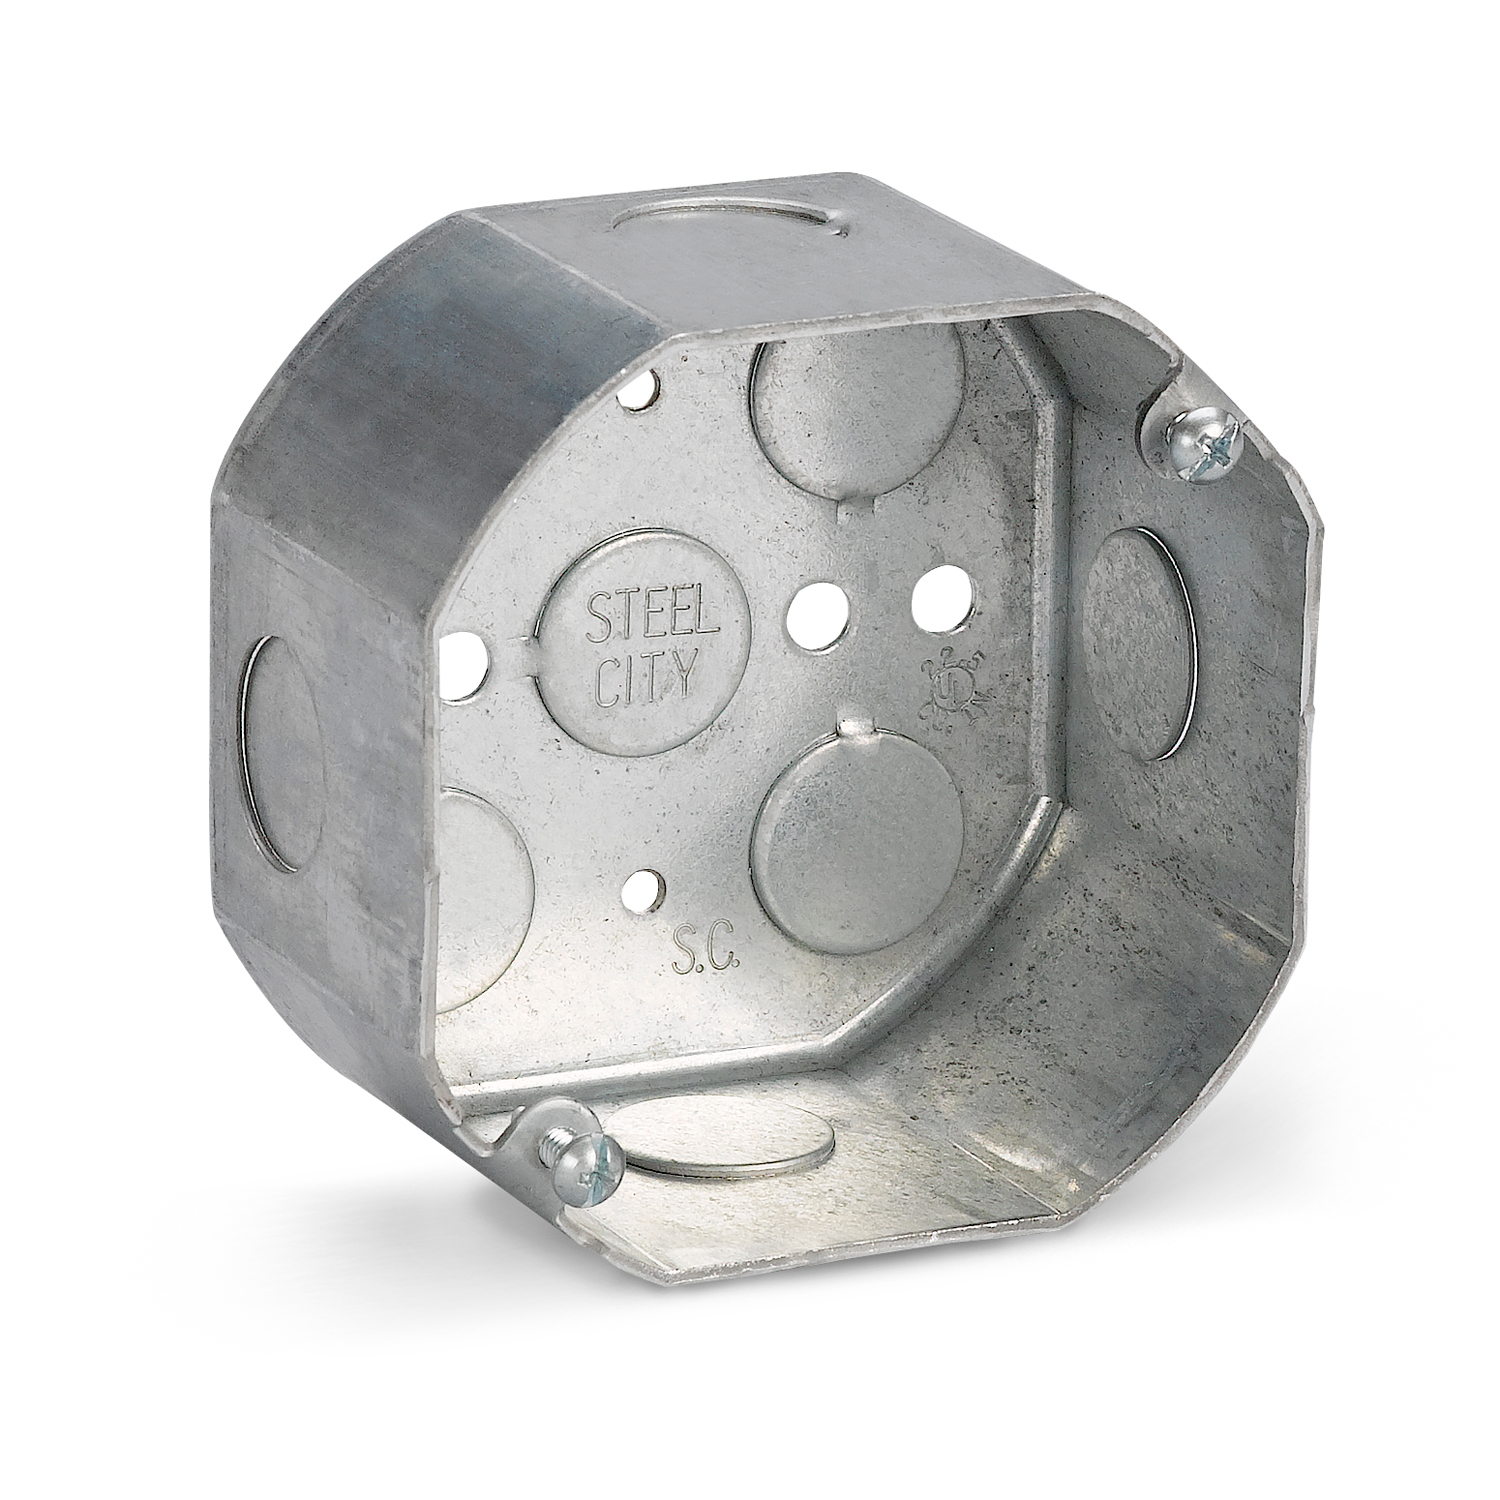 Steel City® Octagon Ceiling Box, 1 Outlet, 2 Knockouts, 1/2 in Knockout, Knockout Cable Entry, 4 in Diameter, Octagonal Shape, 22.5 cu-in Capacity, Steel, Pre-Galvanized, Silver, 2-1/8 in D Dimensions